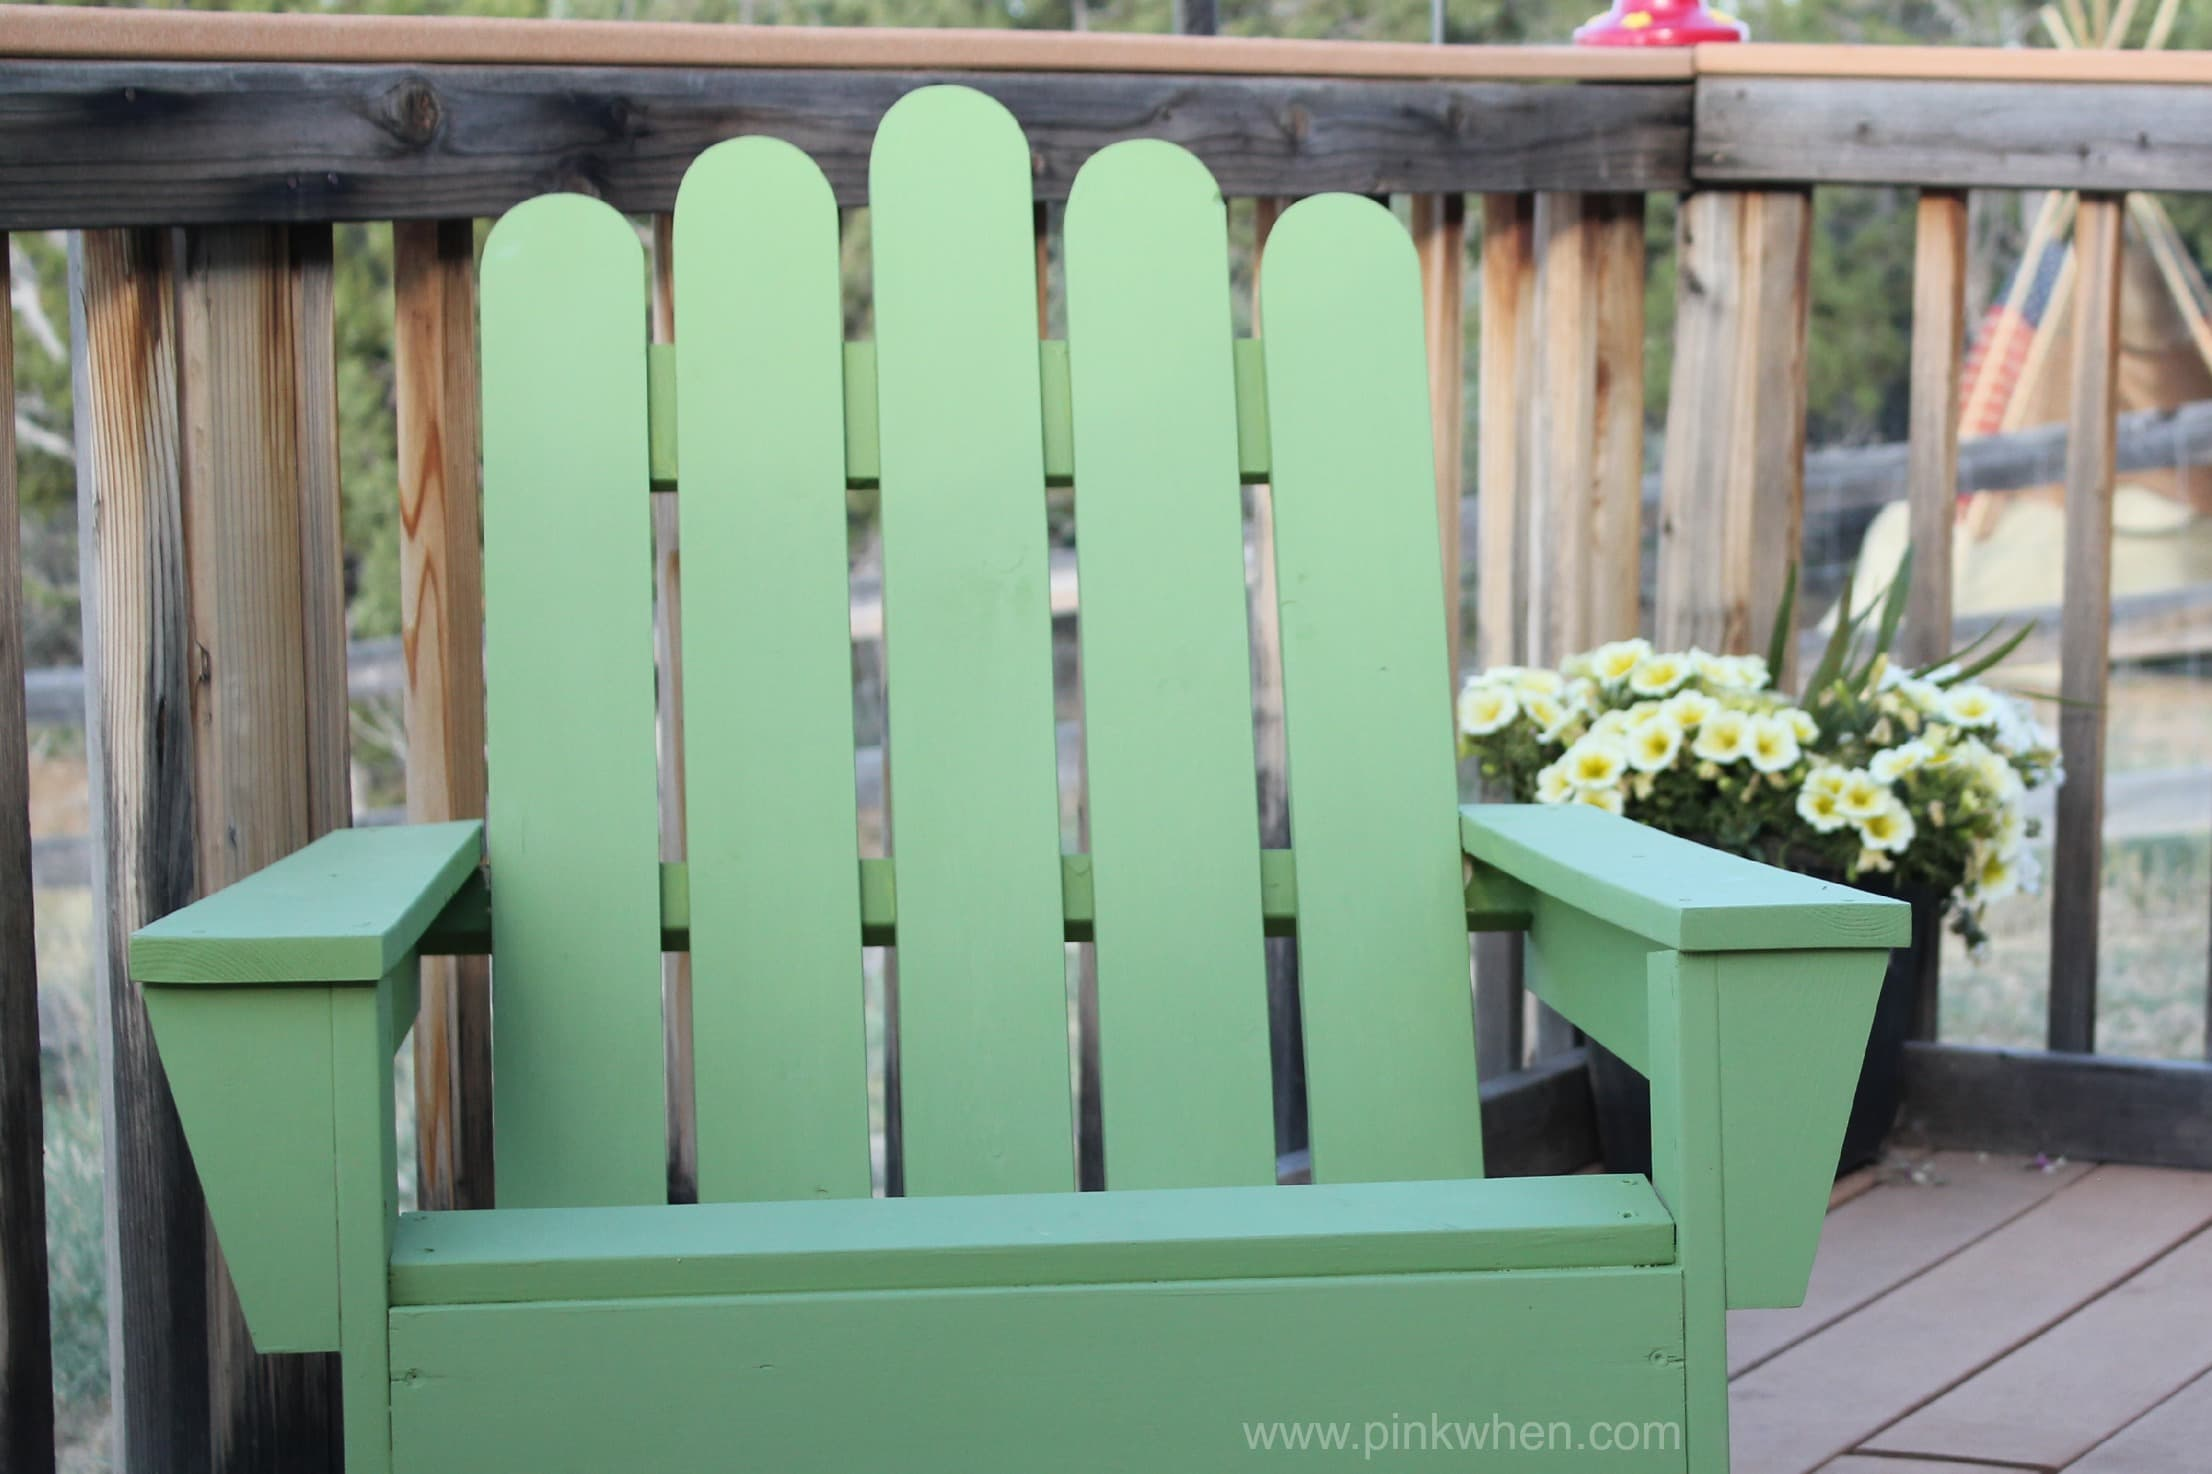 how to build an adirondack chair exercise ball as office calories burned diy chairs page 2 of pinkwhen